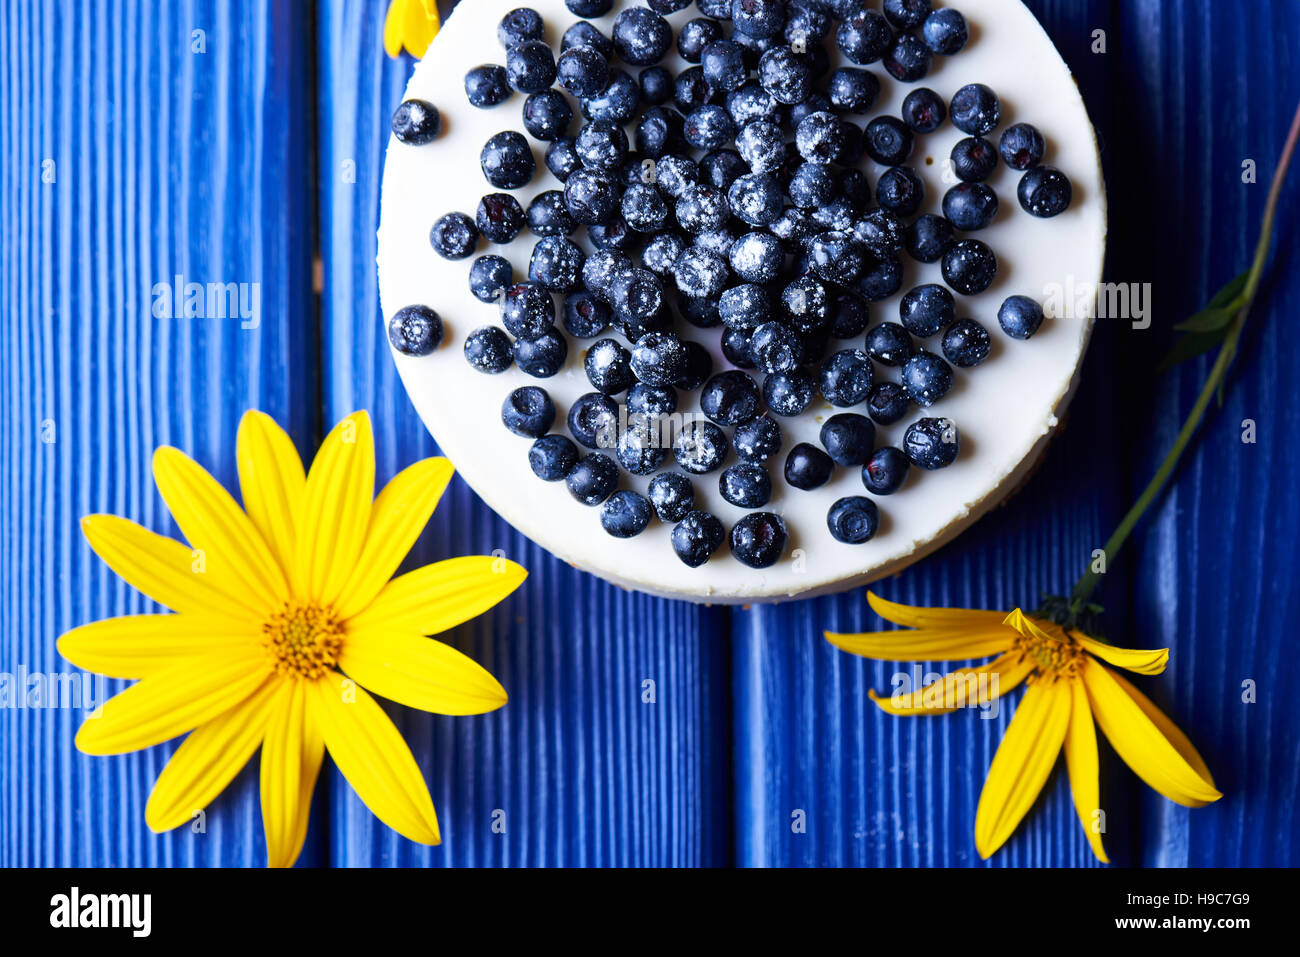 Sweet creamy blueberry cheesecake with fresh blue berries on a blue wooden background with yellow flowers. top view. - Stock Image